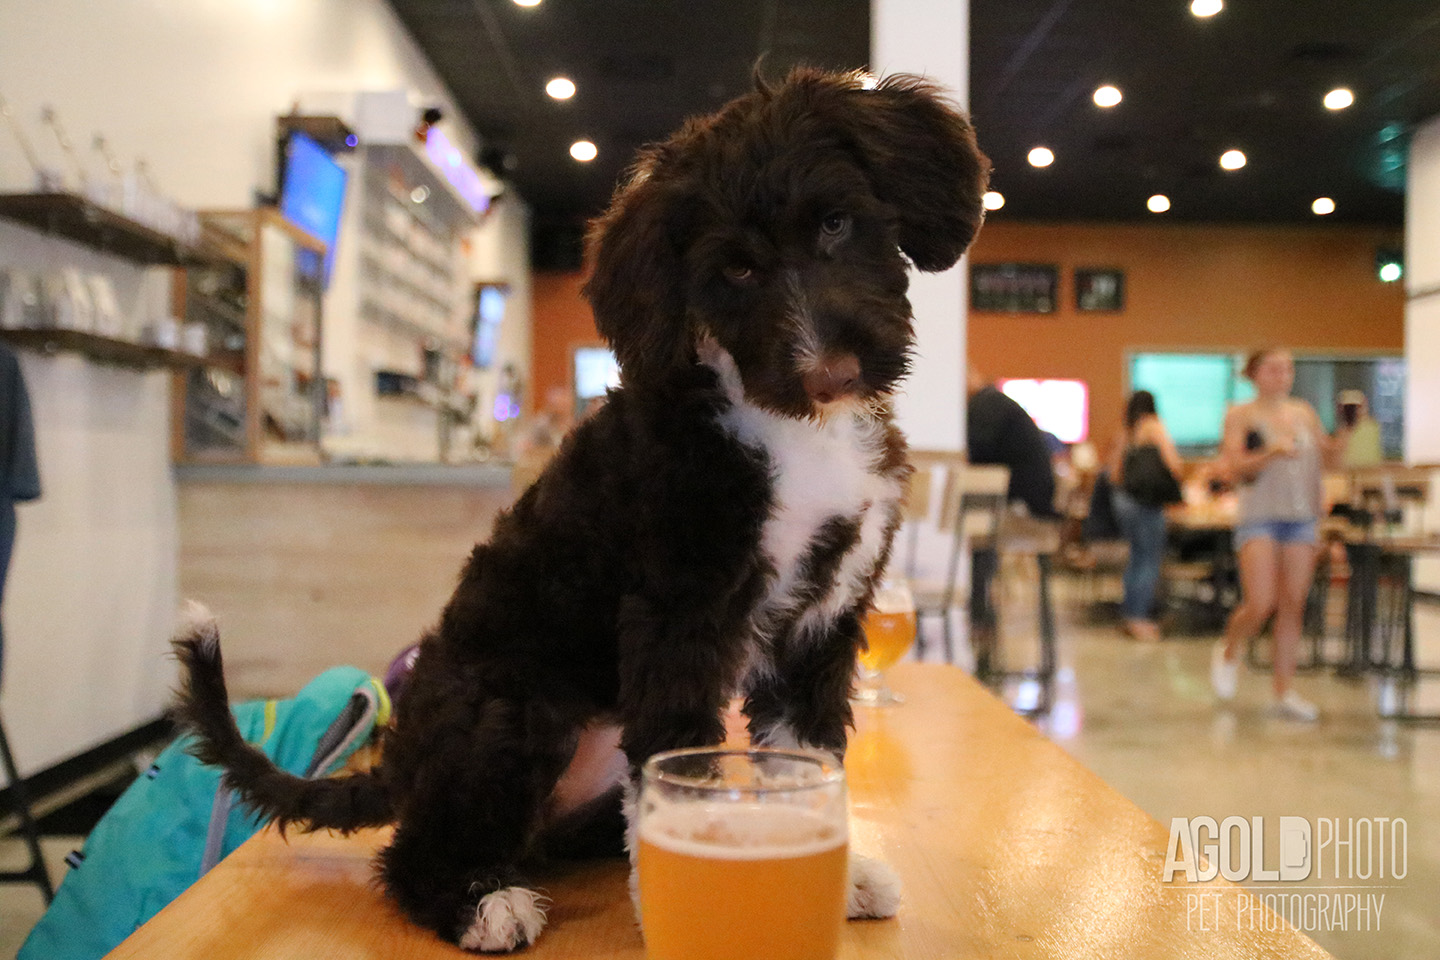 Seminole Heights Pup Crawl_AGoldPhoto Pet Photography_11